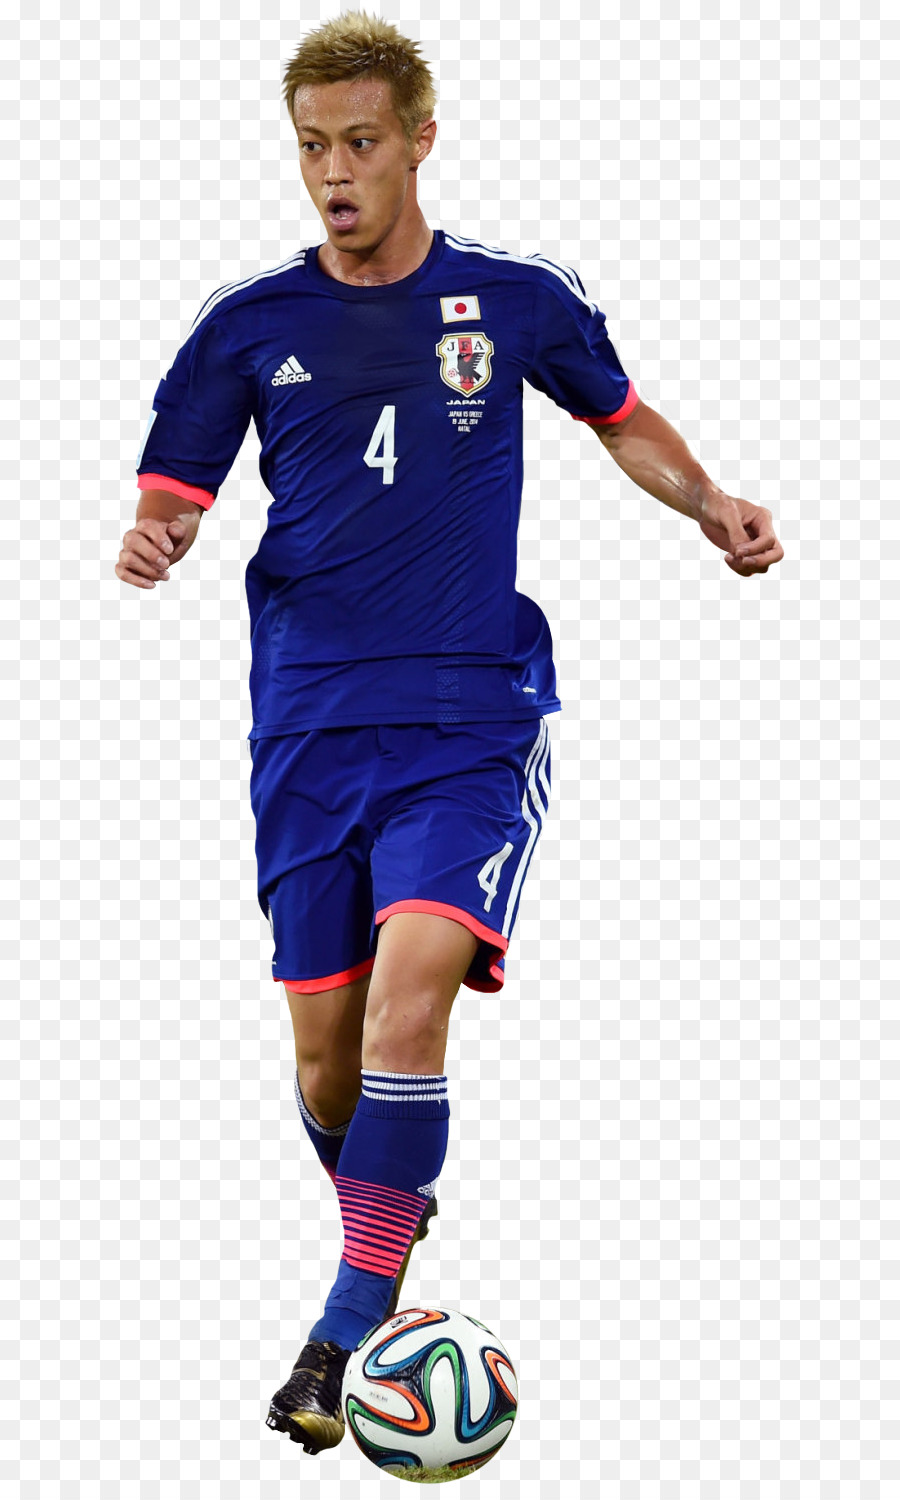 28805a9eb Keisuke Honda 2011 AFC Asian Cup 2010 FIFA World Cup 2014 FIFA World Cup C.F.  Pachuca - football png download - 680 1485 - Free Transparent Keisuke Honda  ...